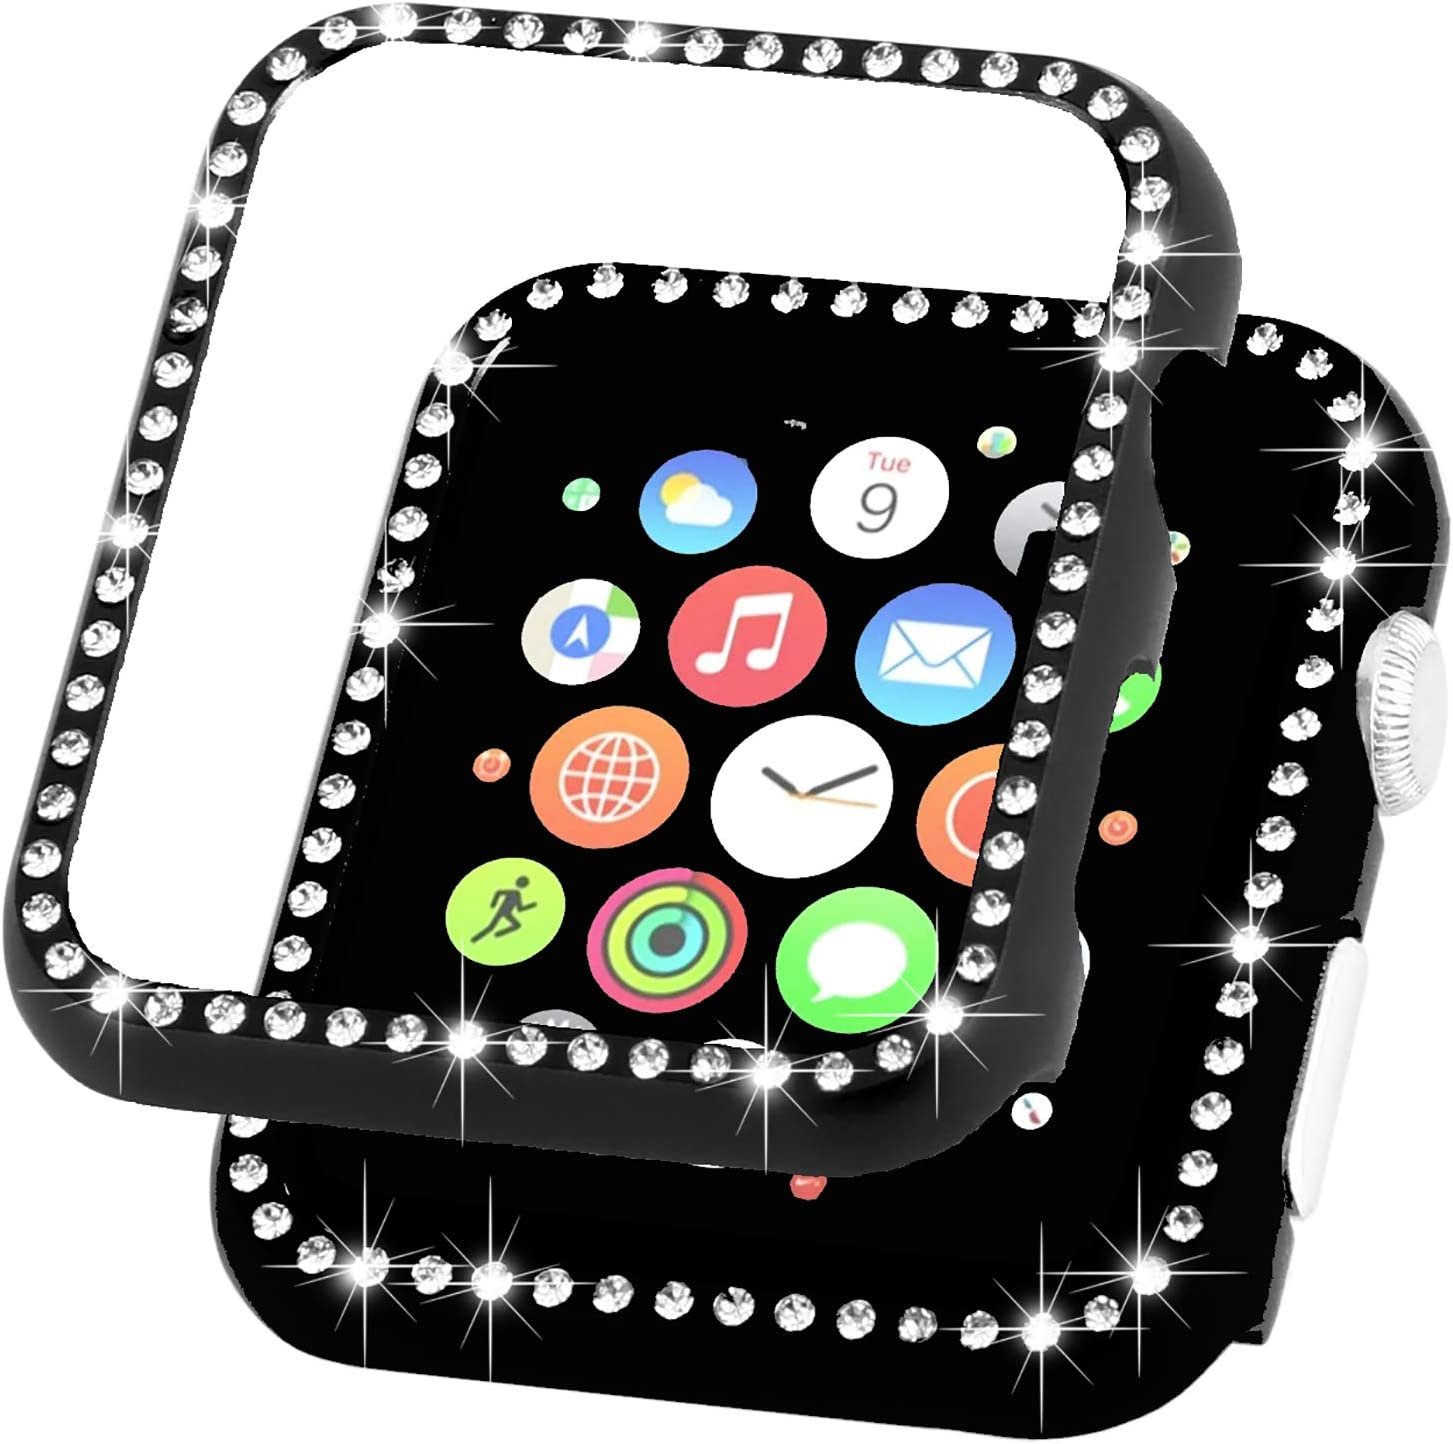 Ayigo Compatible with Apple Watch Case 38mm 42mm, Metal Bumper Protective Cover Women Diamond Crystal Rhinestone Shiny Compatible iWatch Series 3/2/1 (Black, 44mm)